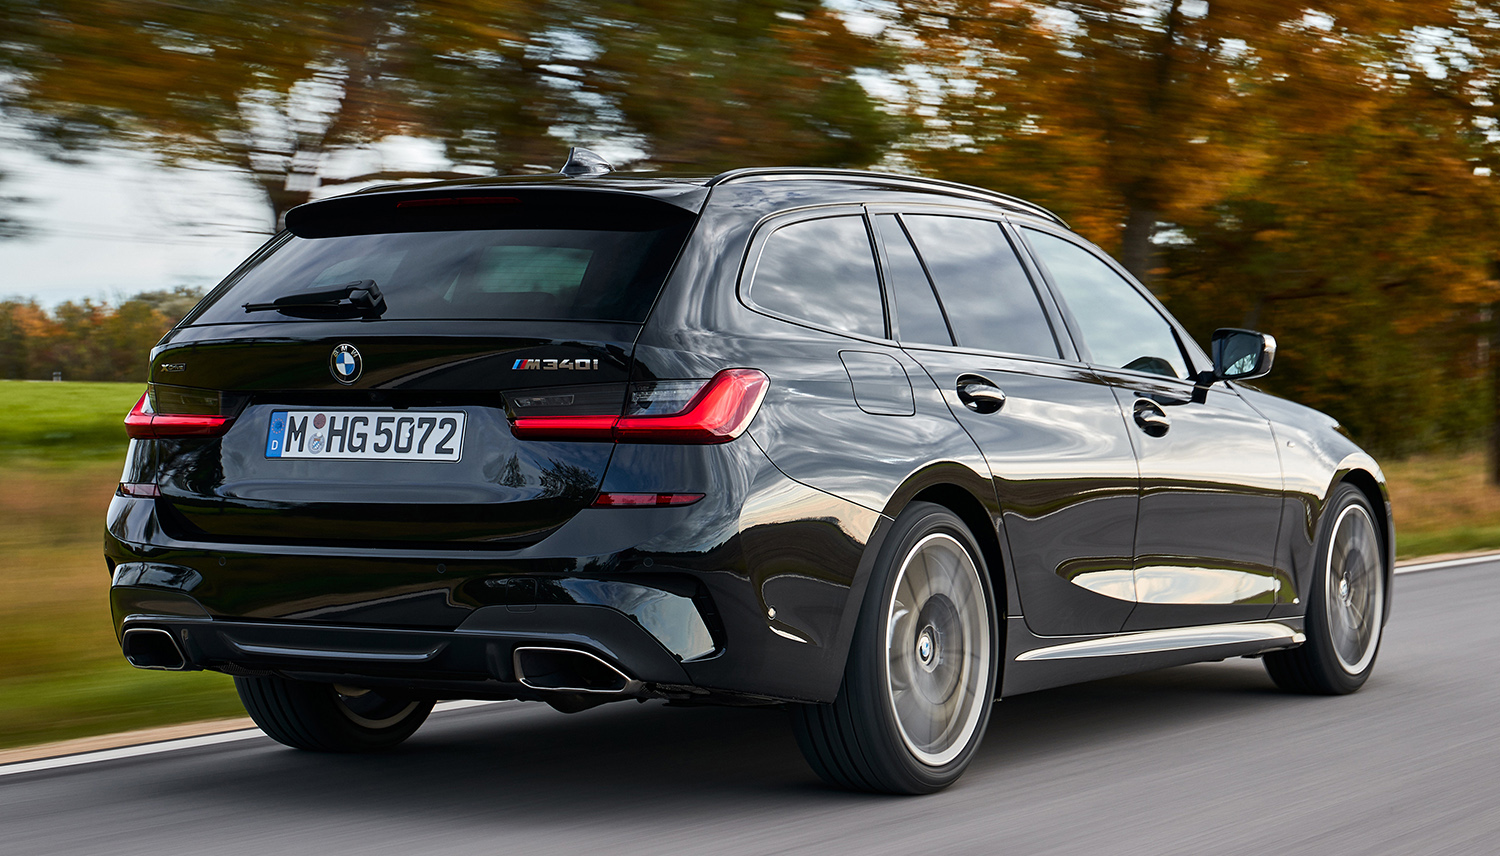 BMW Begins Development of M3 Touring... due in 2022